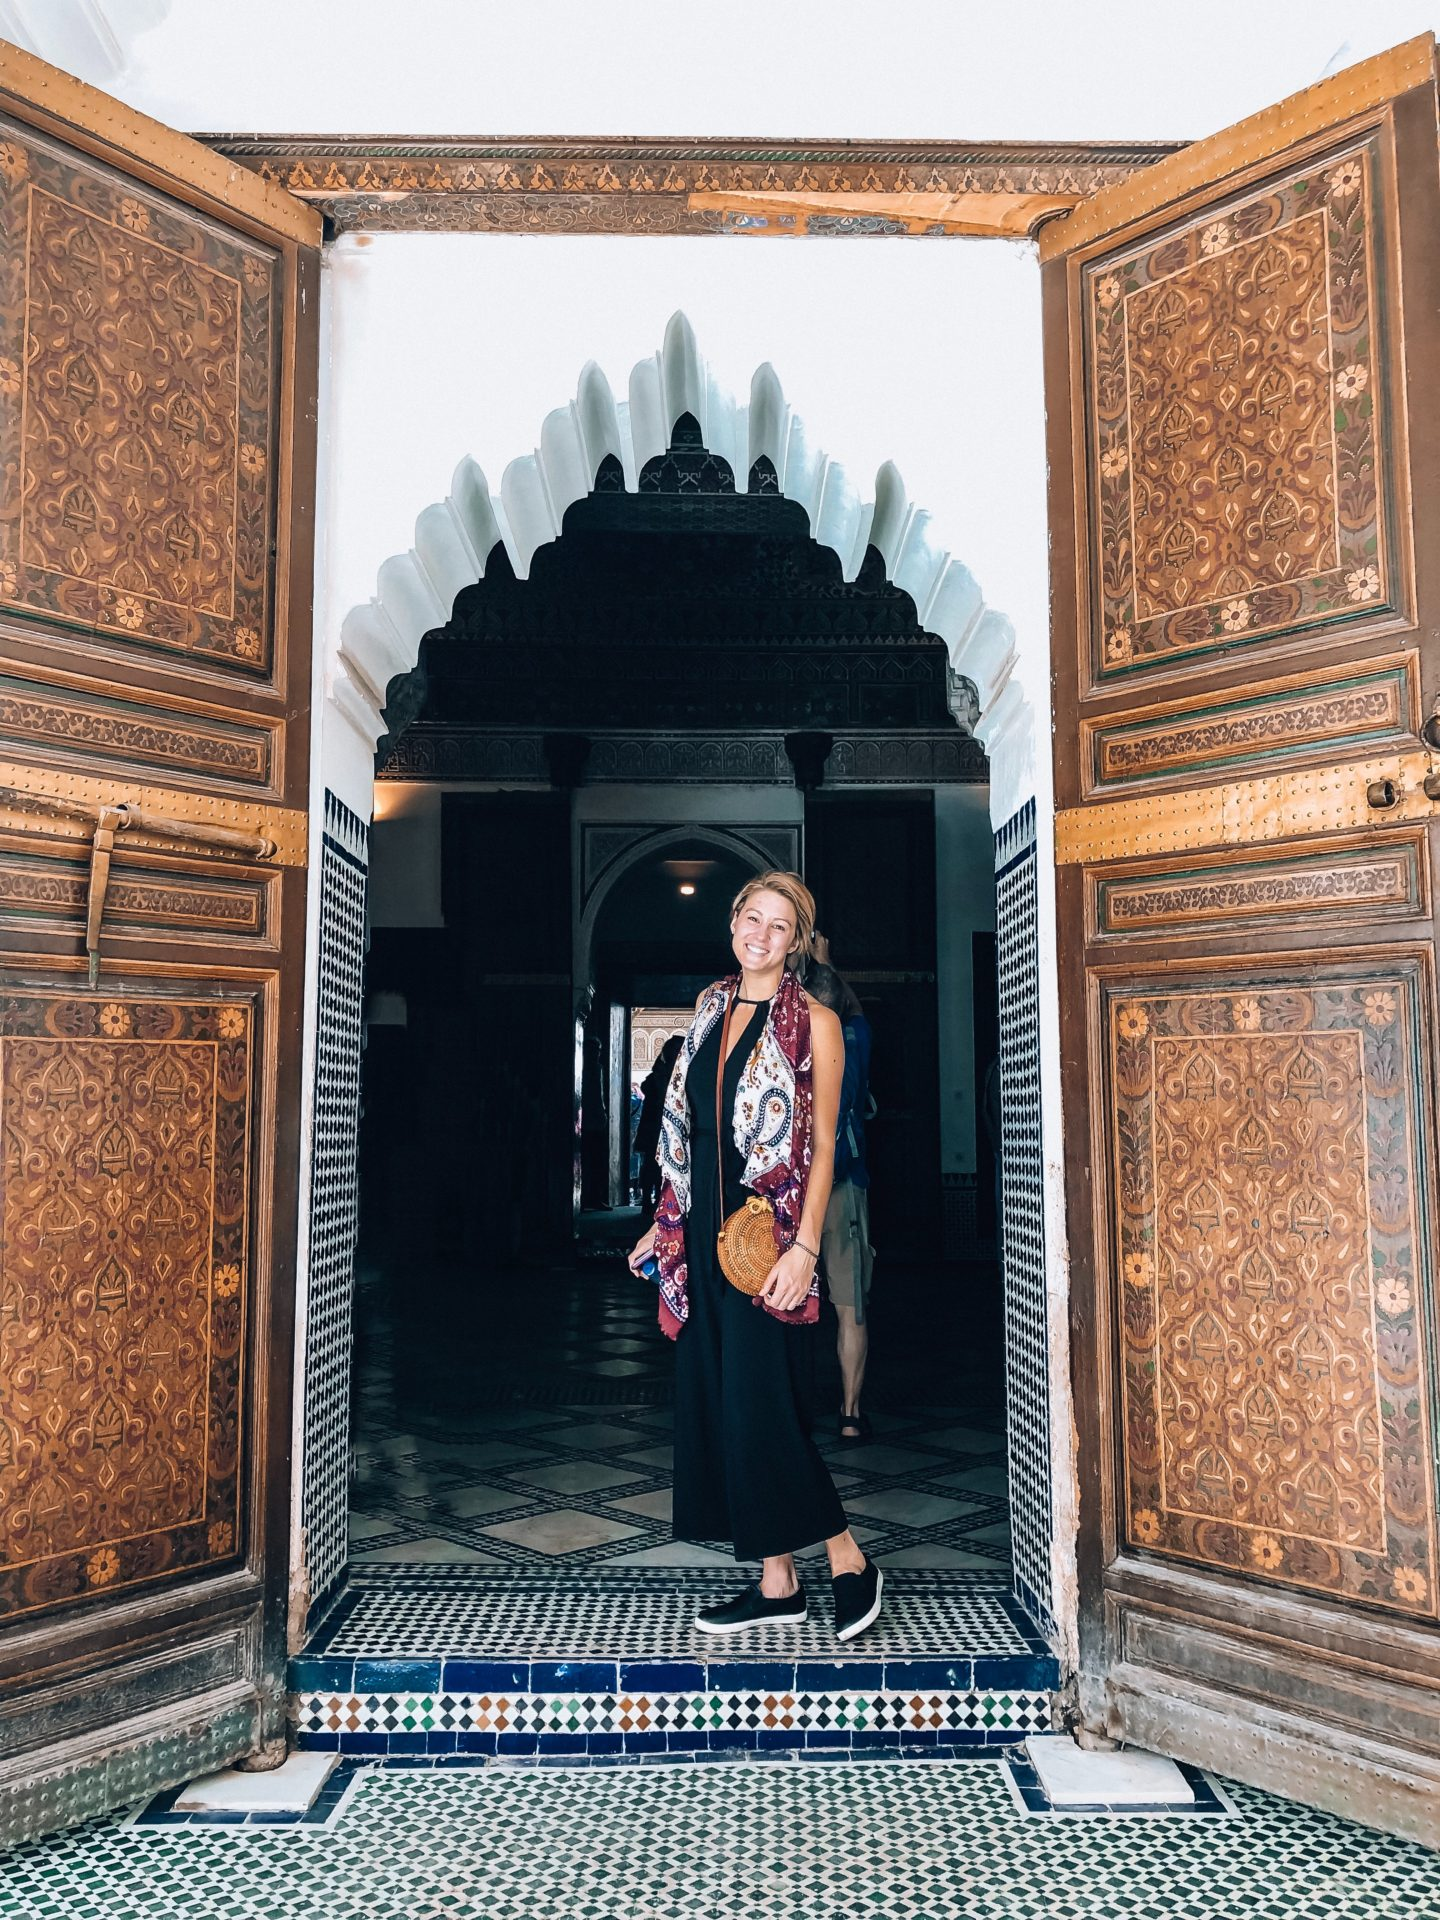 Wandering the colorful and intricate hallways of Bahia Palace in Marrakech